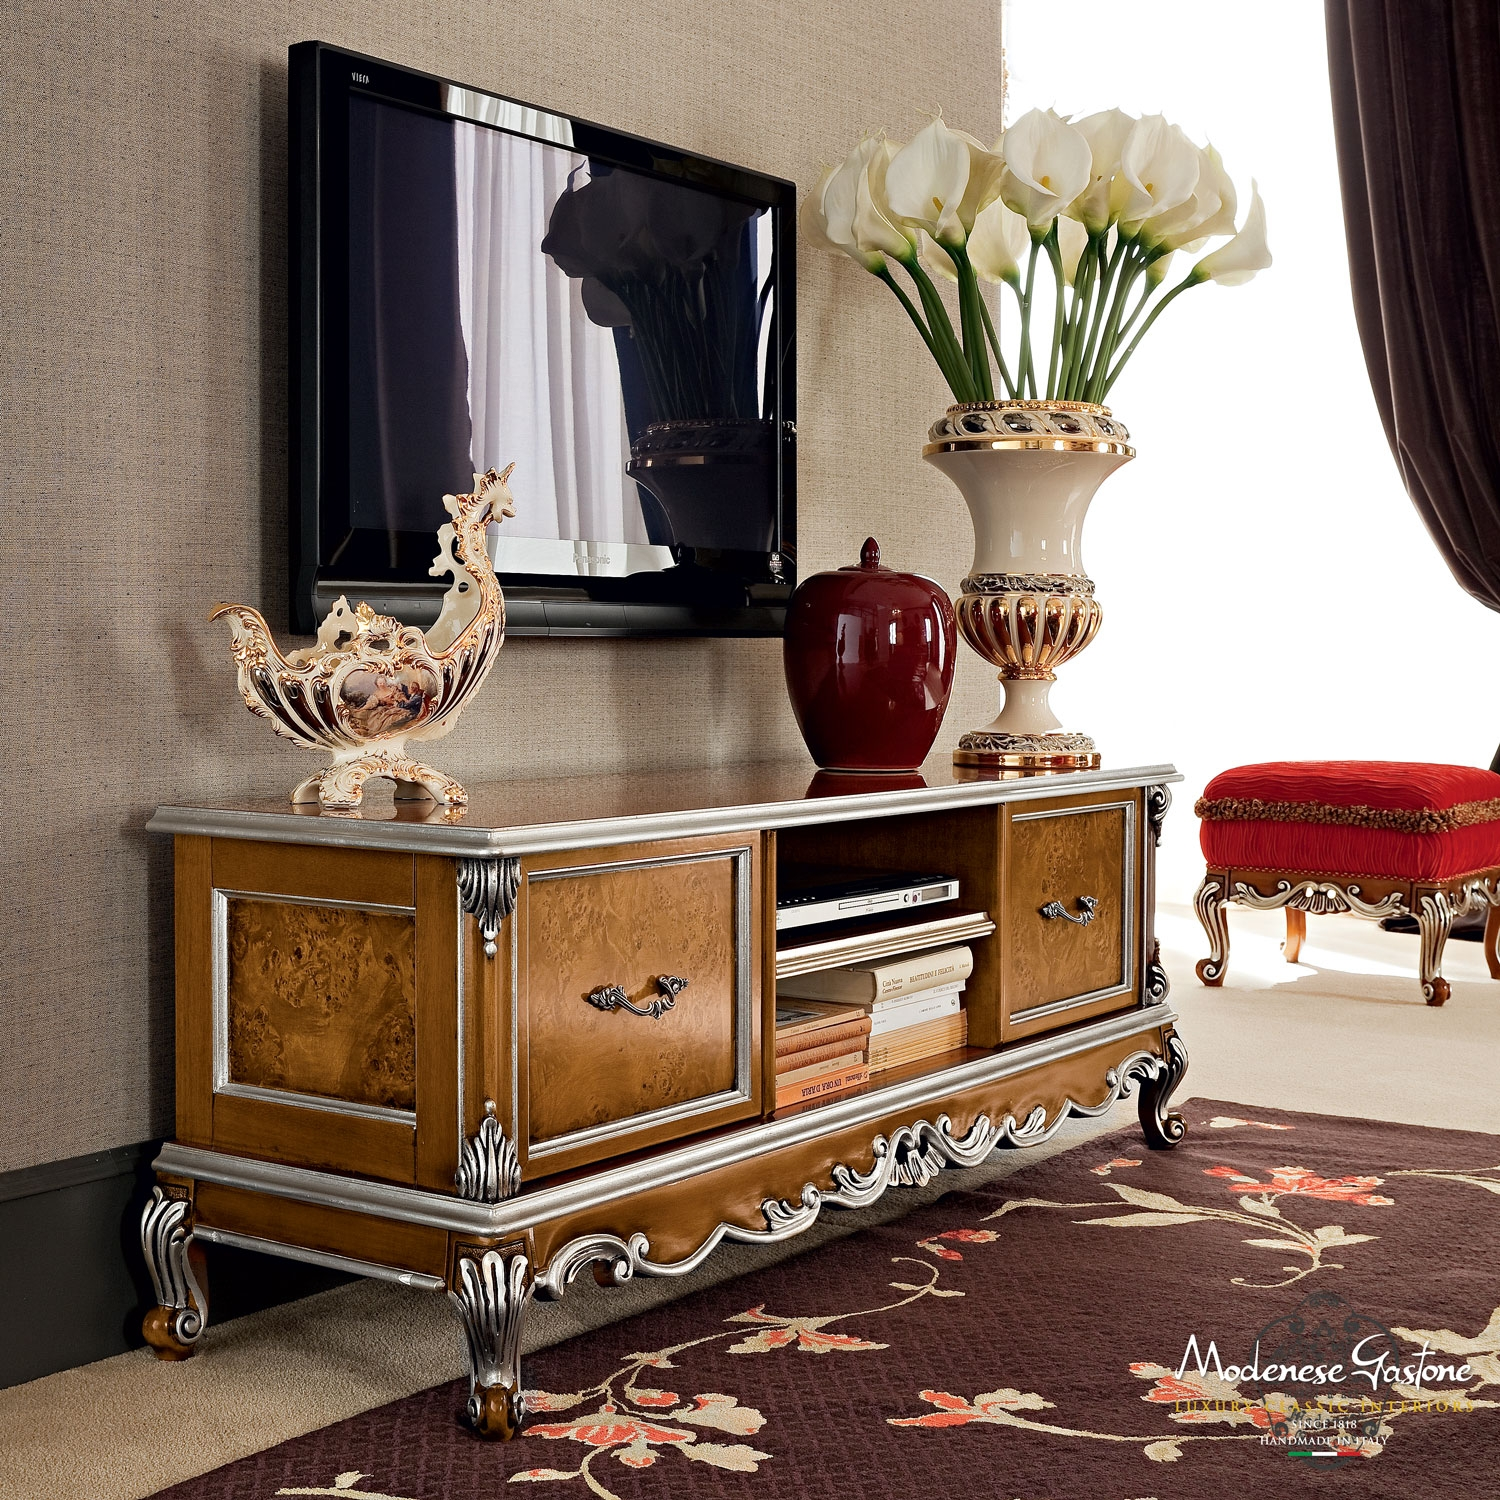 Royal Bedroom With Prive Bedroom Casanova Modenese Gastone Pertaining To Bespoke Tv Stands (View 13 of 15)